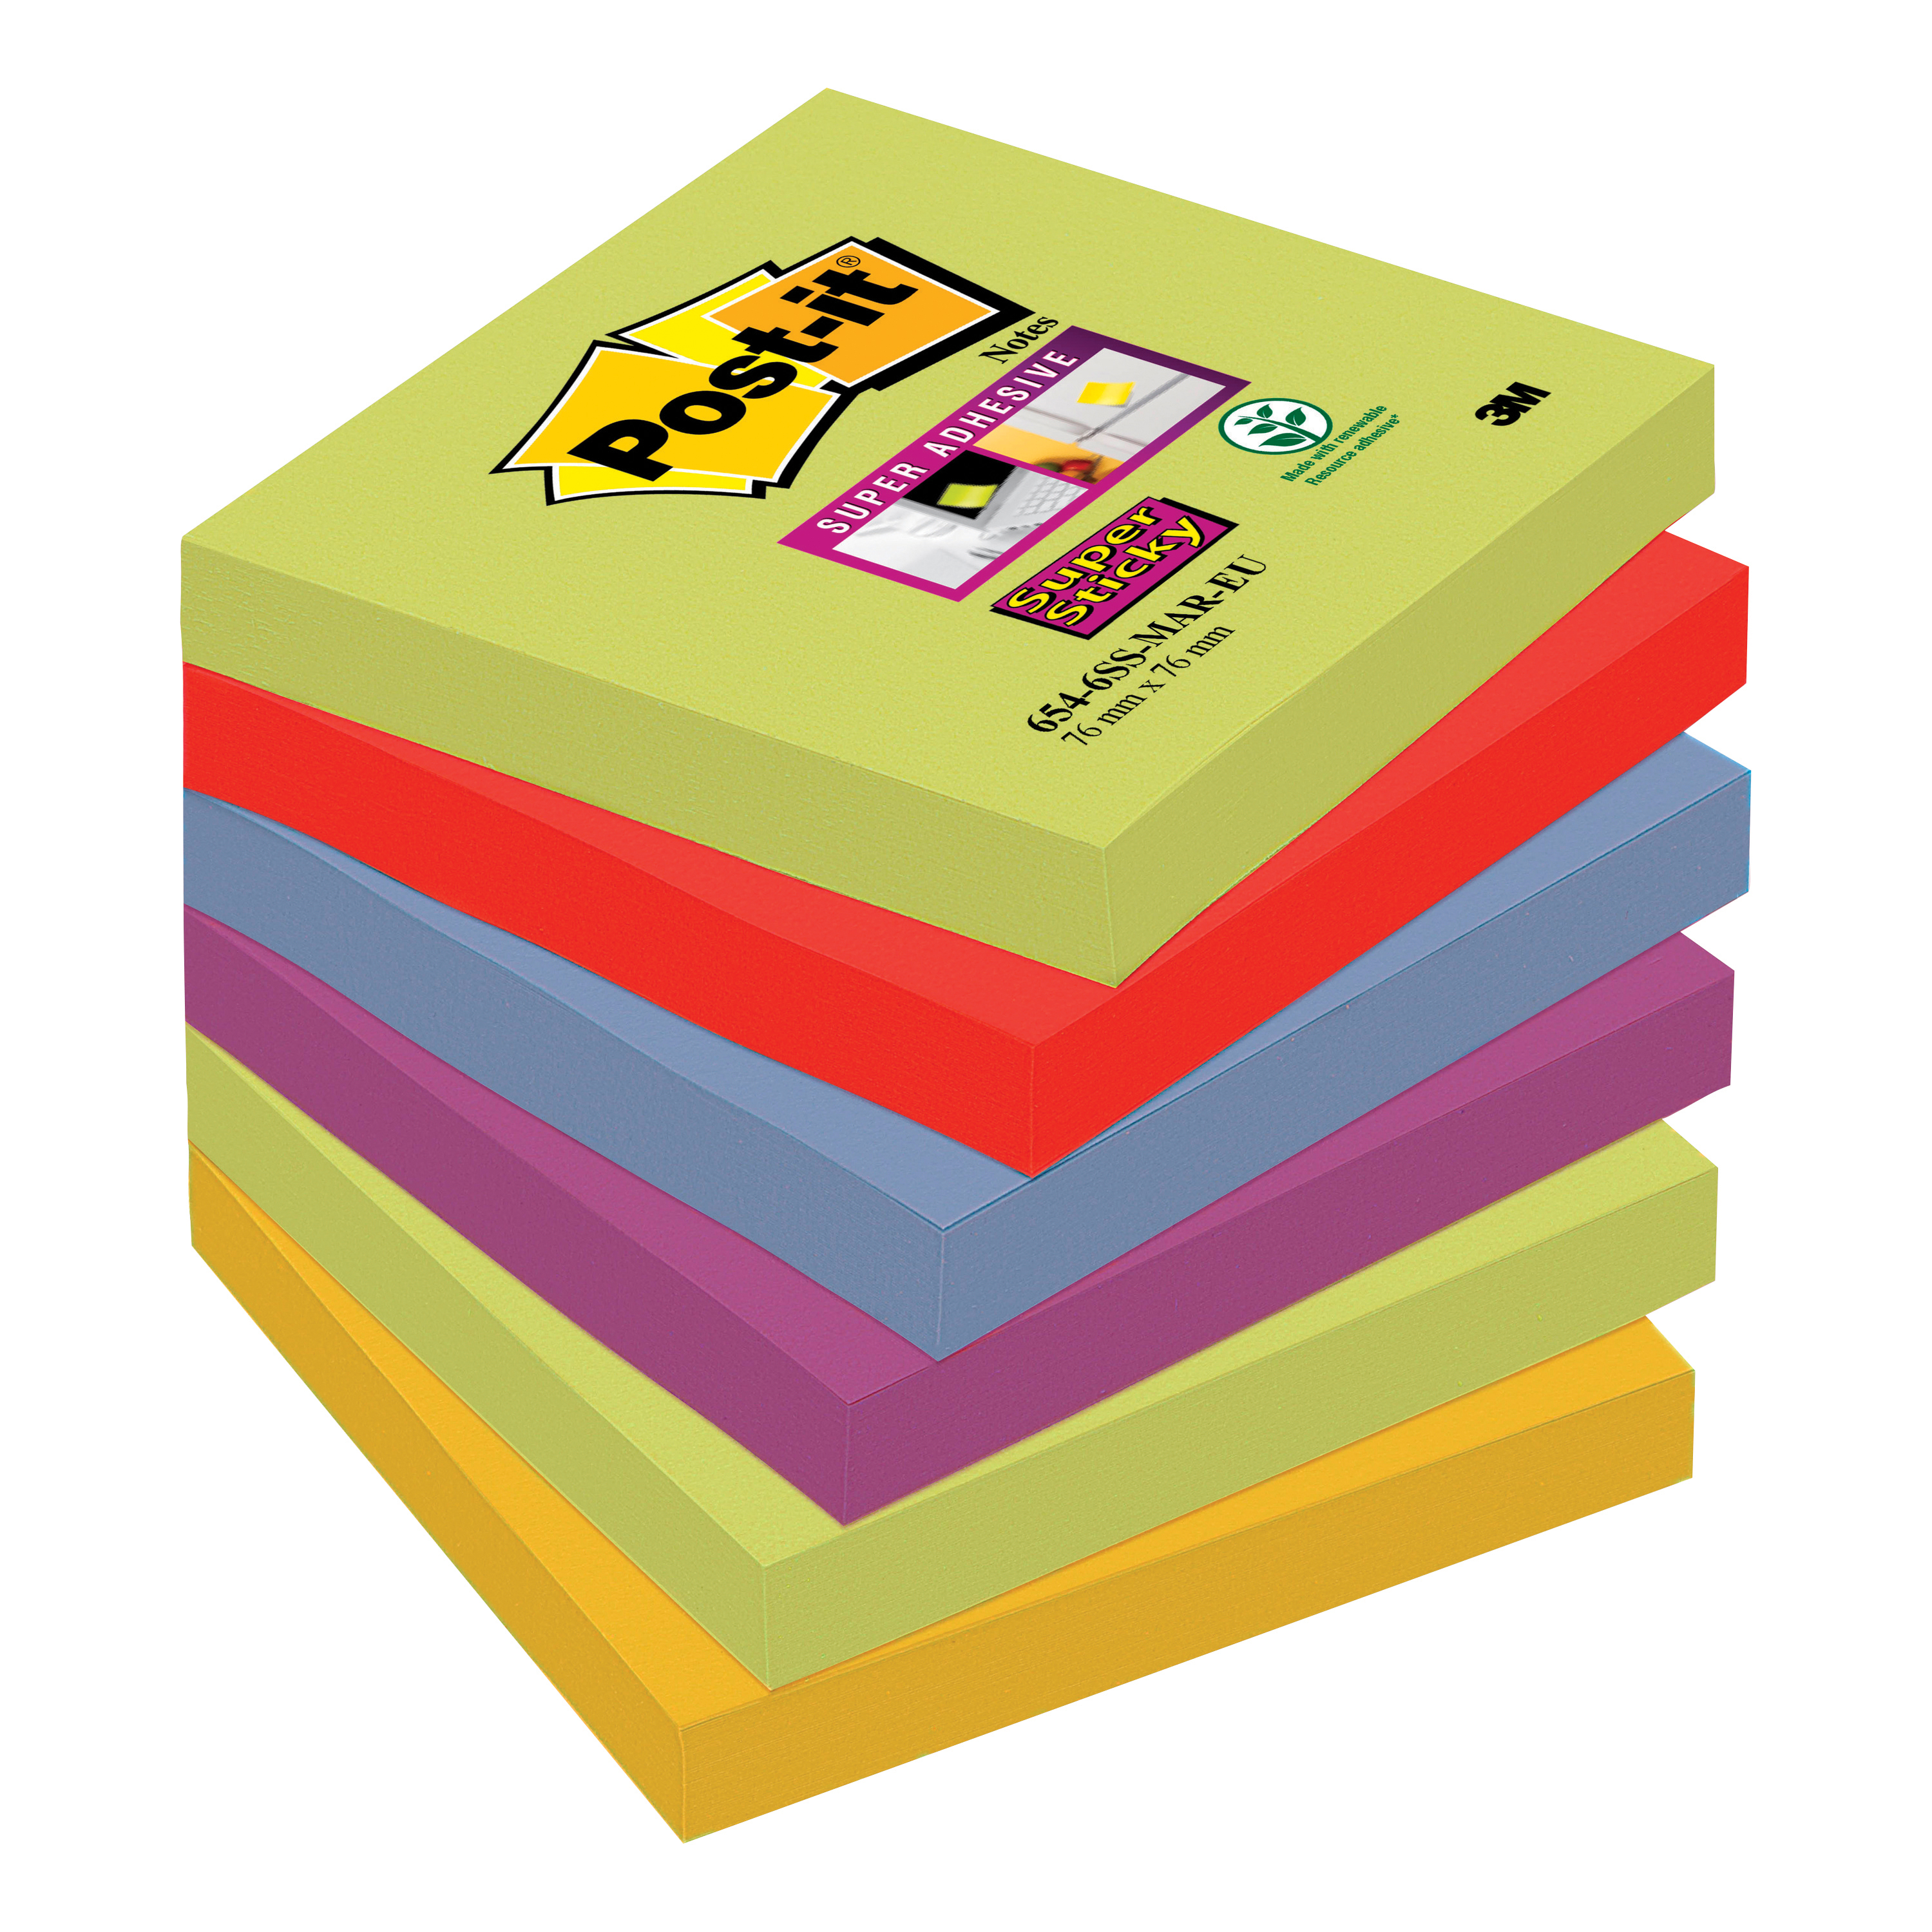 Self adhesive note paper Post-it Super Sticky Removable Notes Pad 90 Sheets 76x76mm Marrakesh Ref 654-6SS-MAR Pack 6